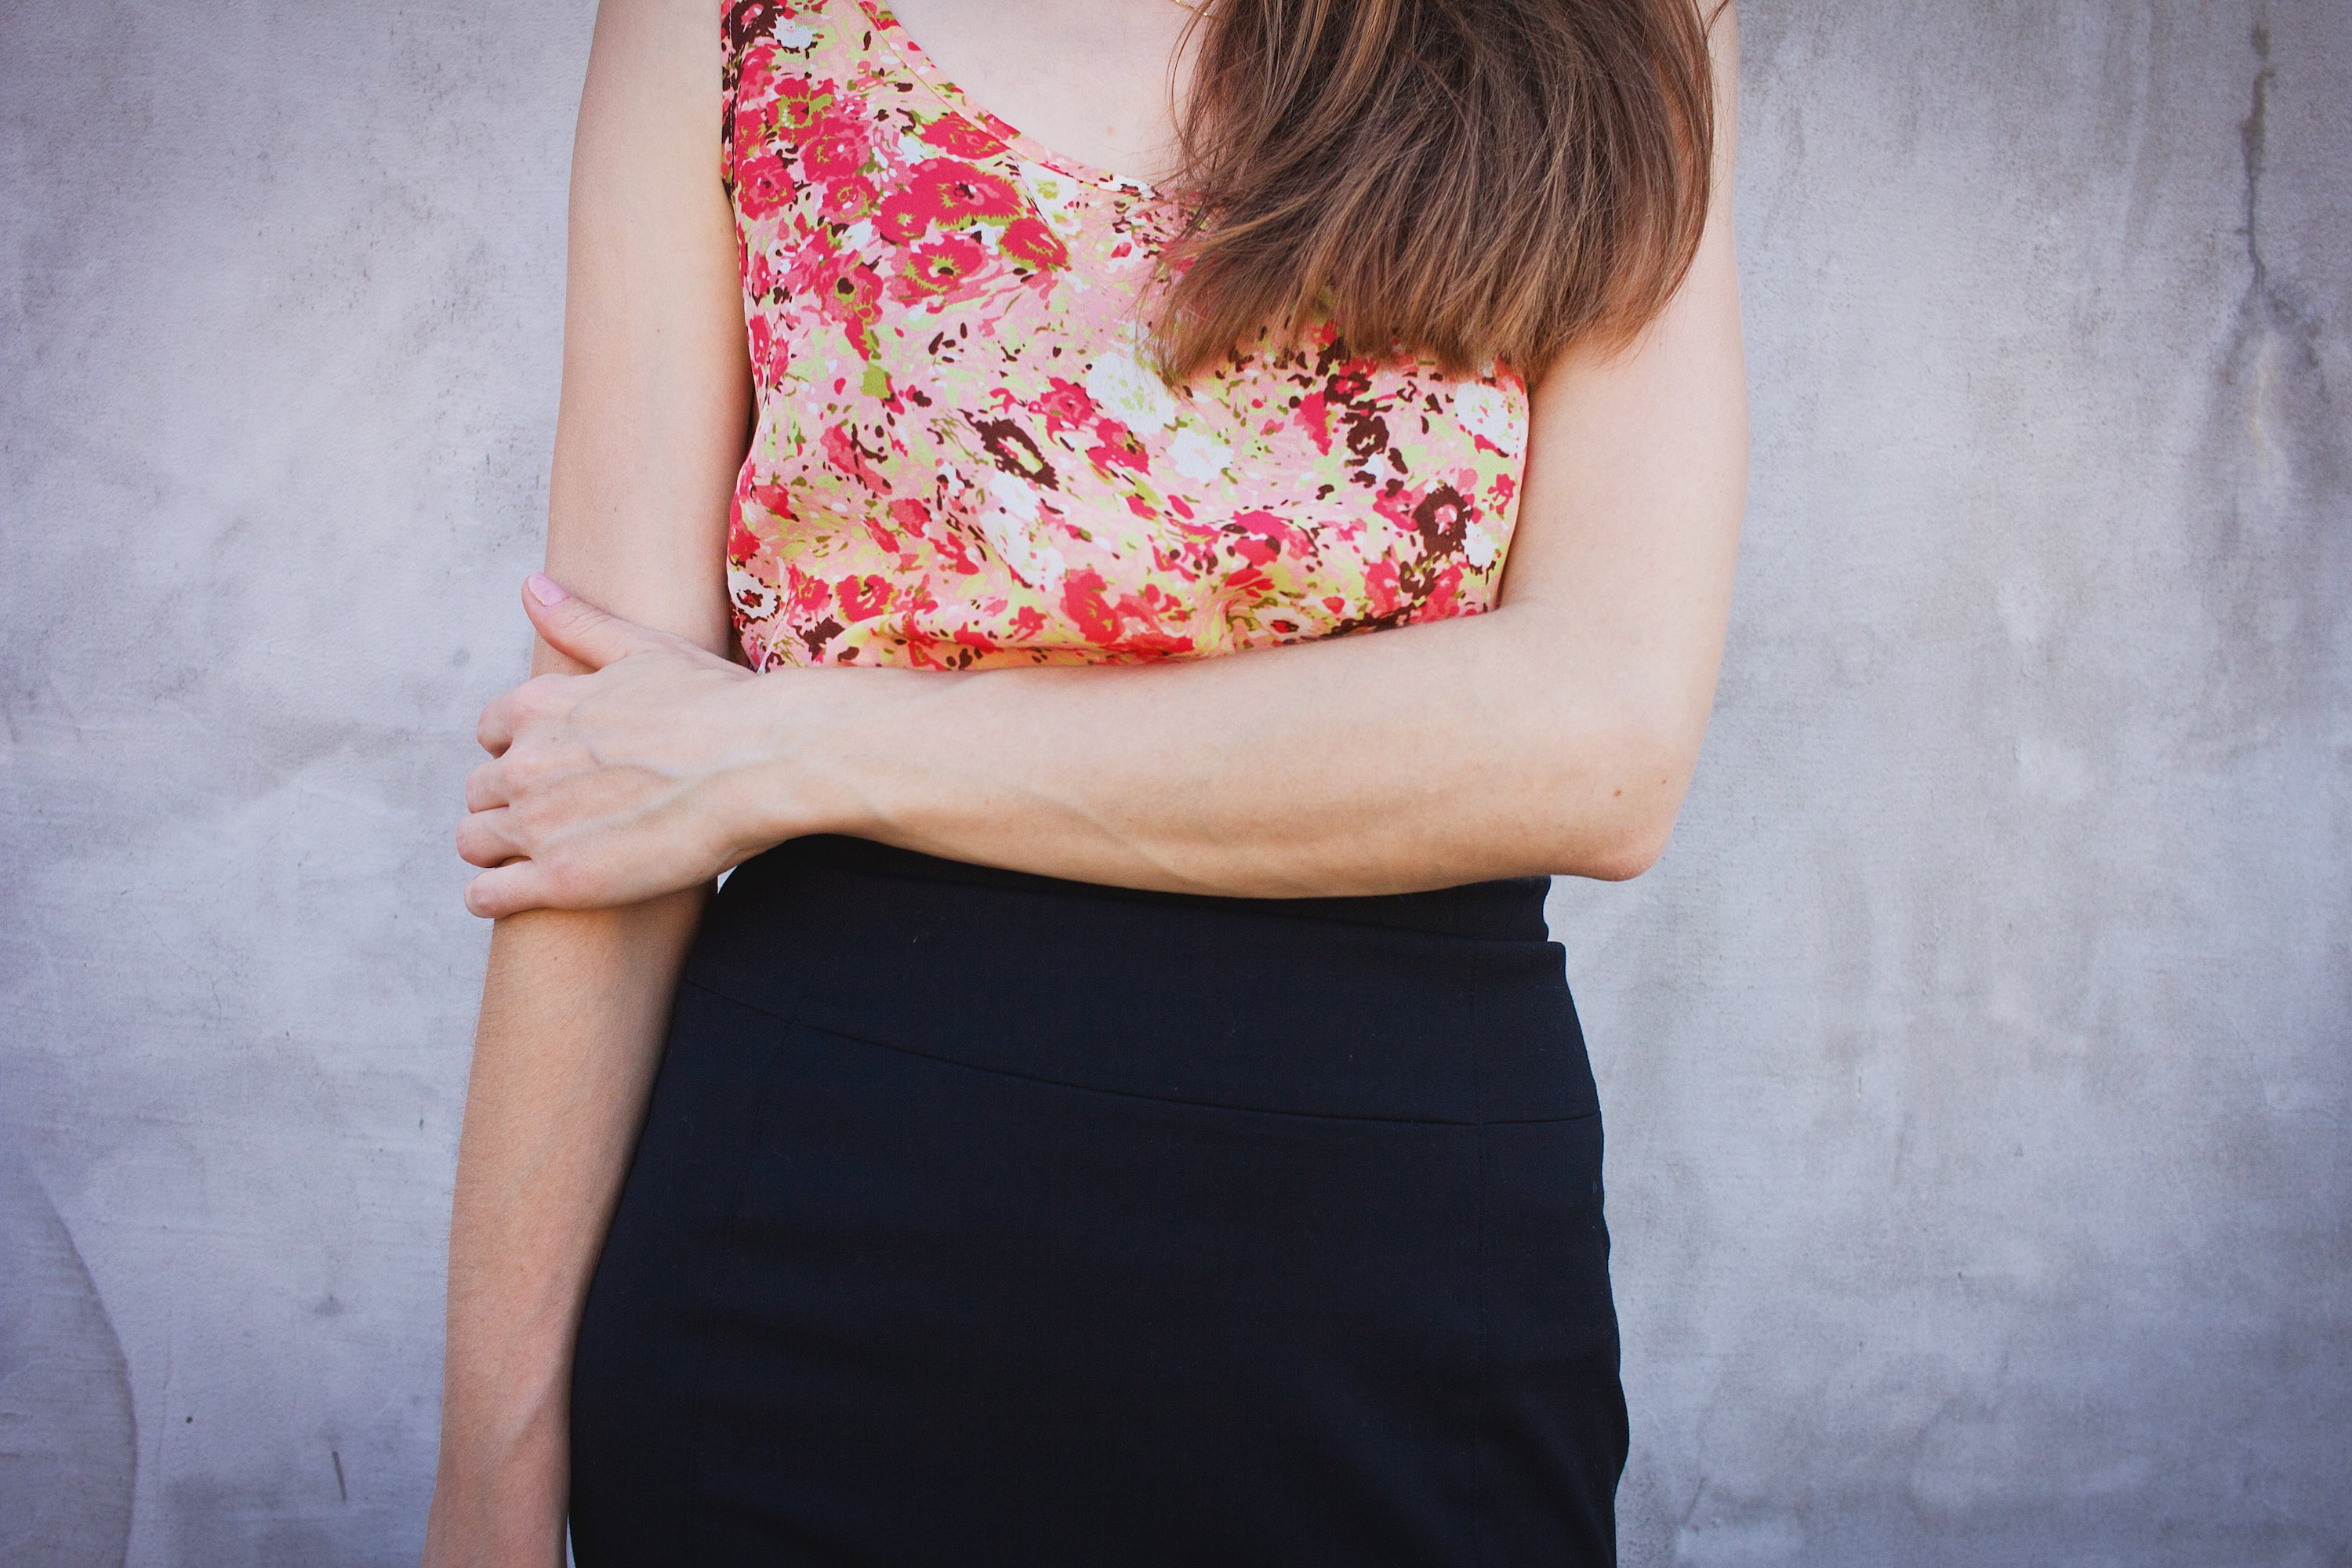 Woman standing with arm across abdomen